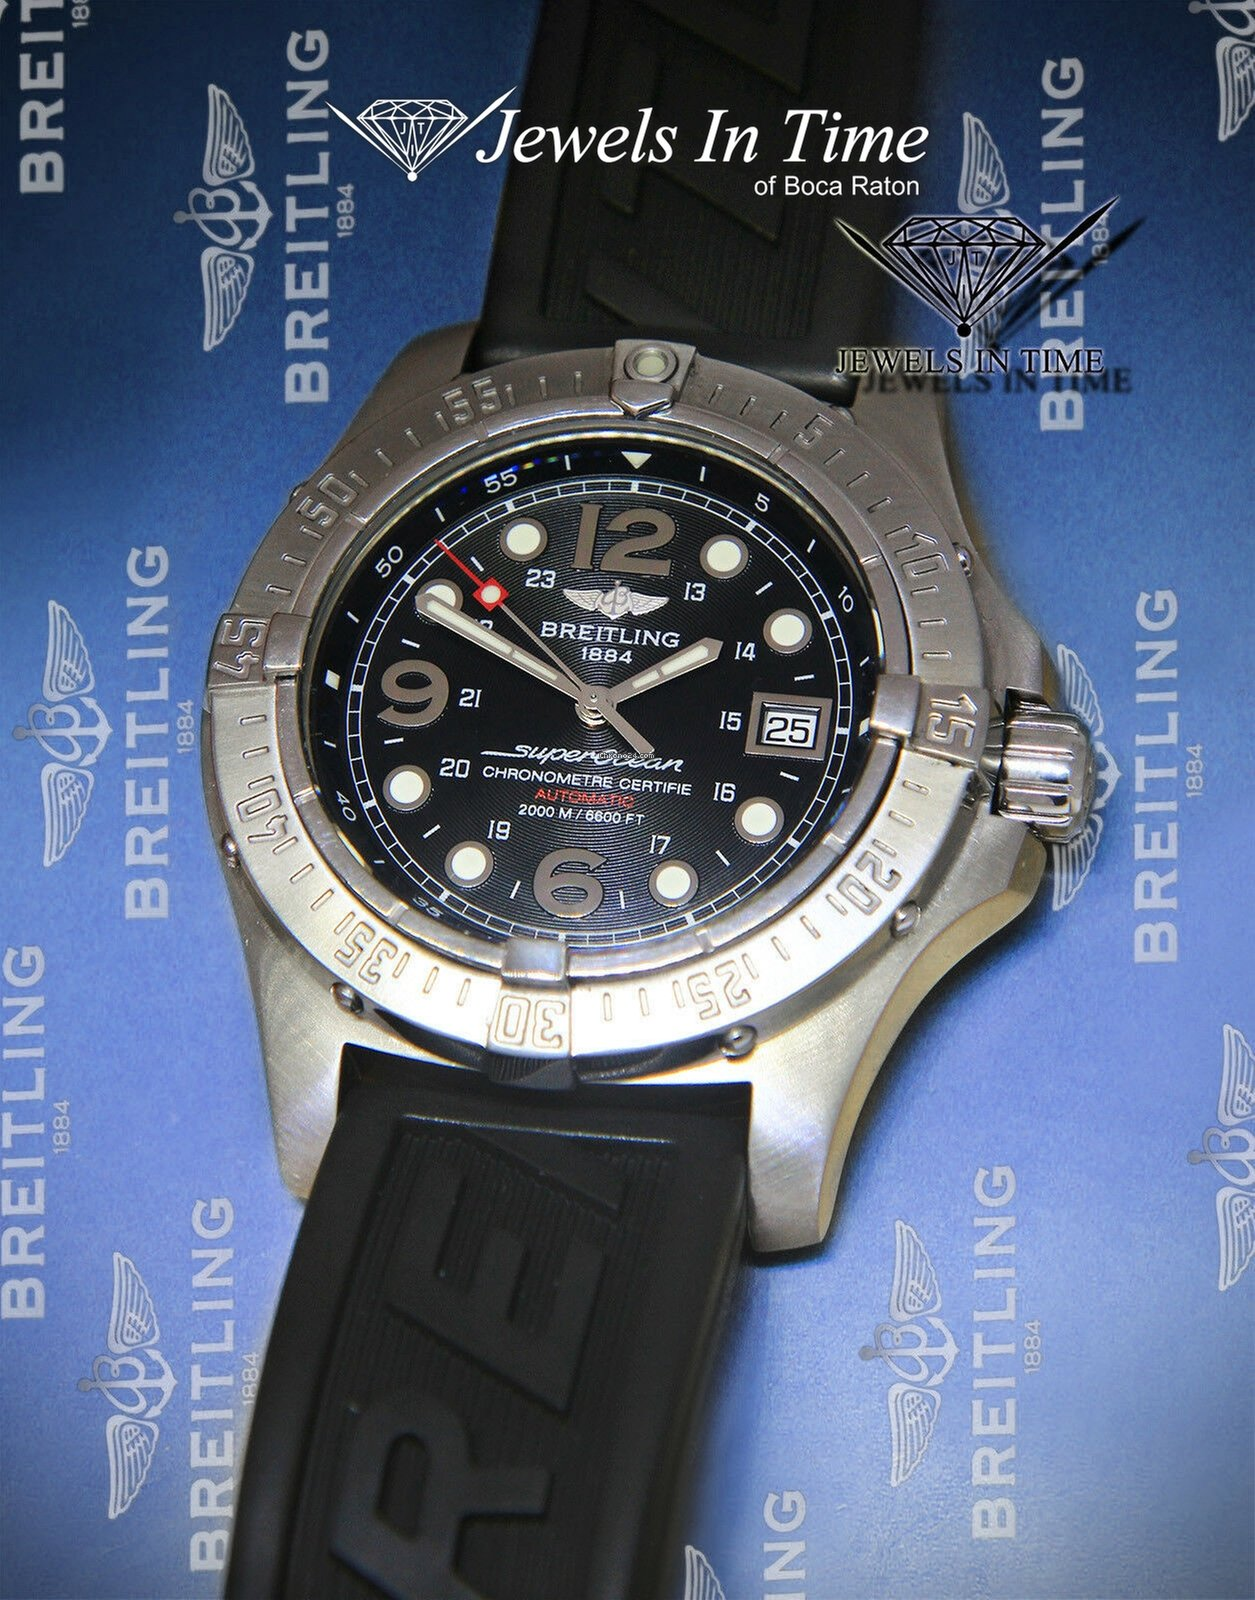 Breitling SuperOcean Steelfish Black Dial Rubber Strap 44mm